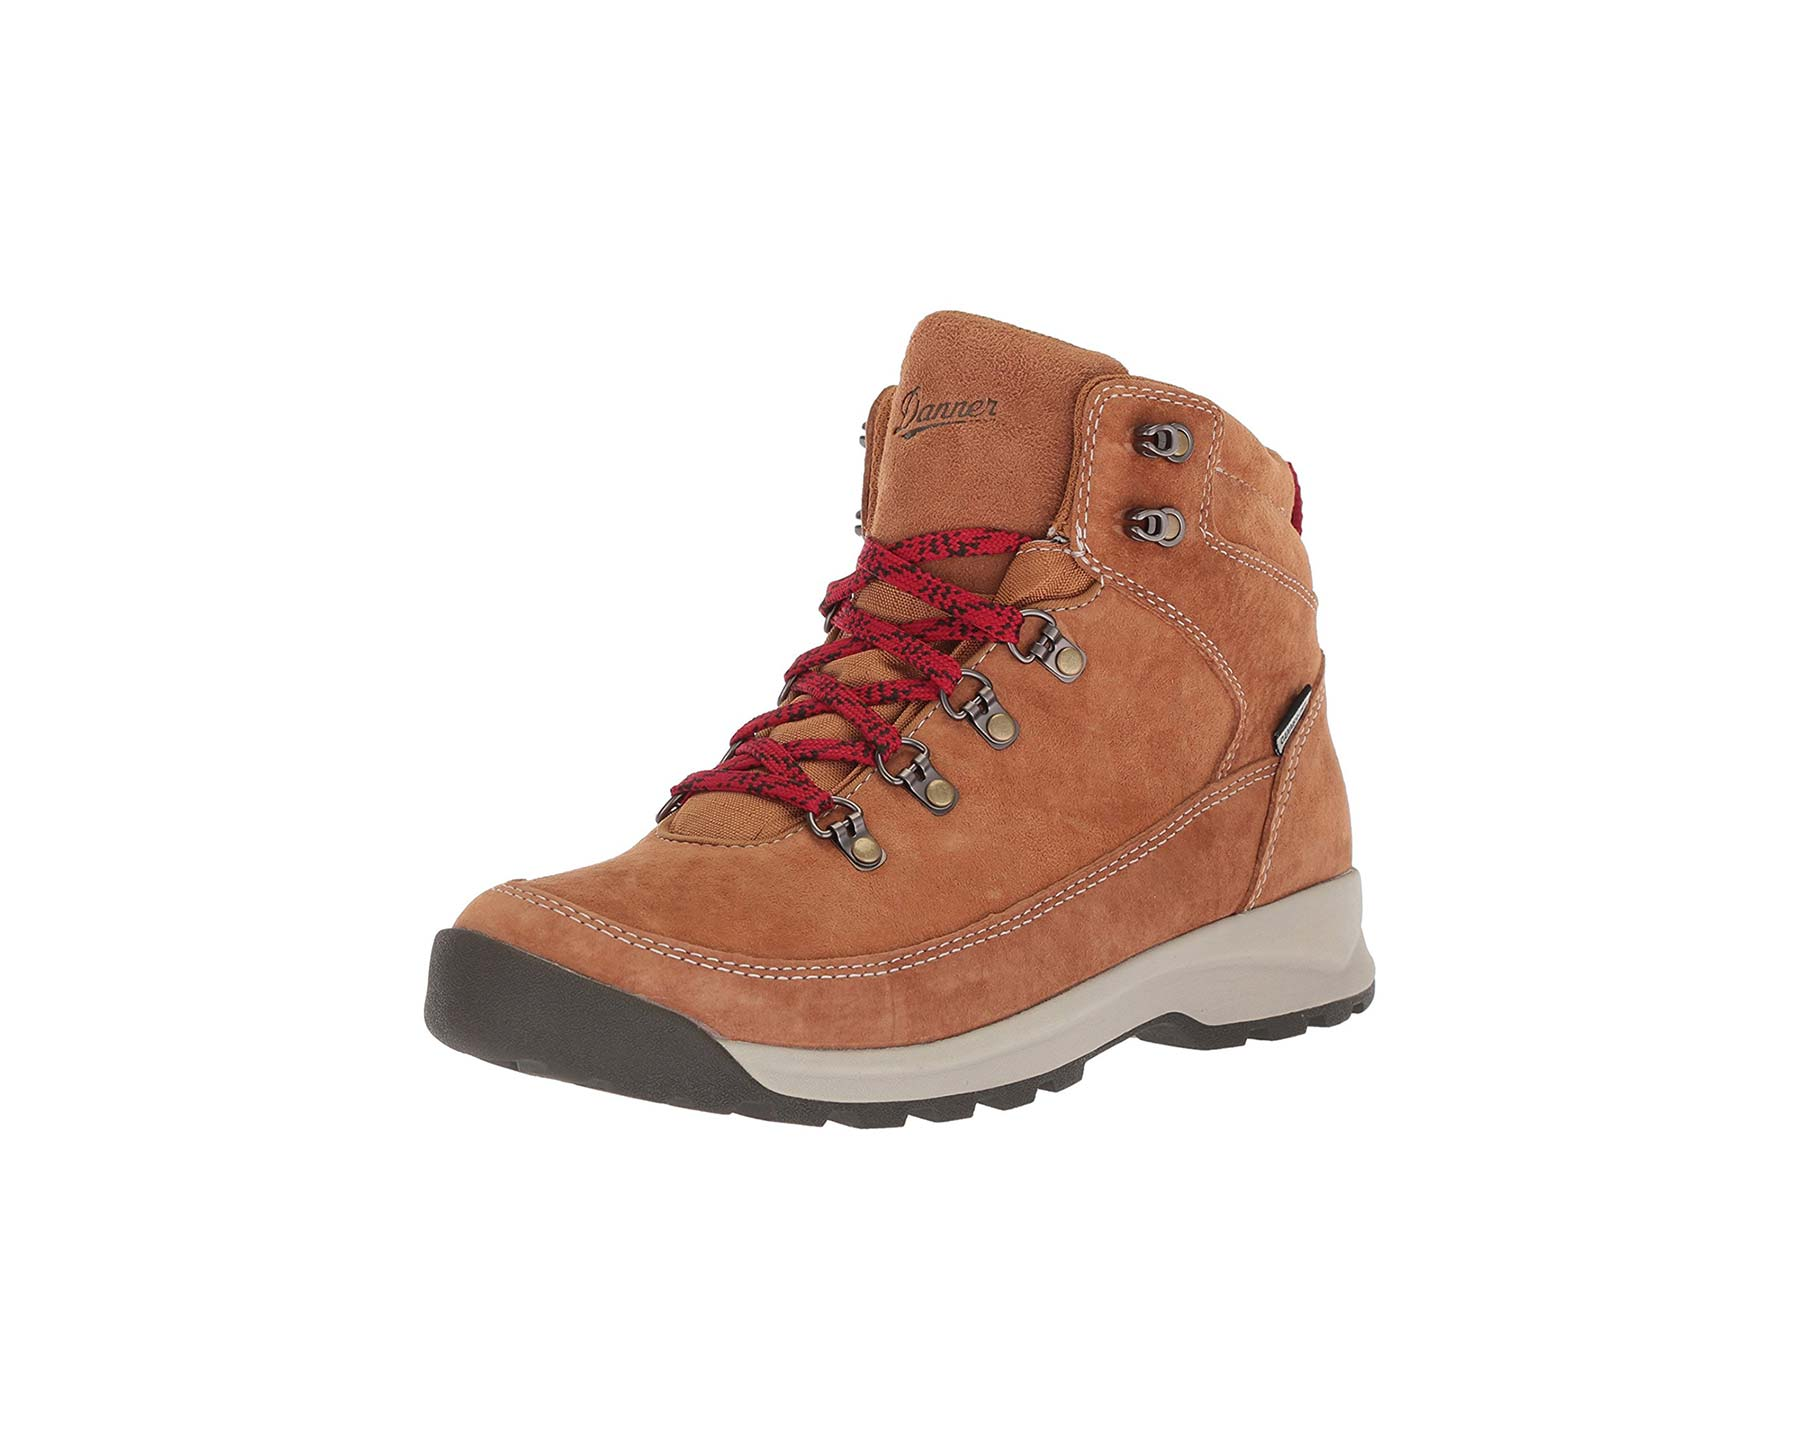 a60e25910ff 9 Stylish Waterproof Boots To Get You Through the Winter